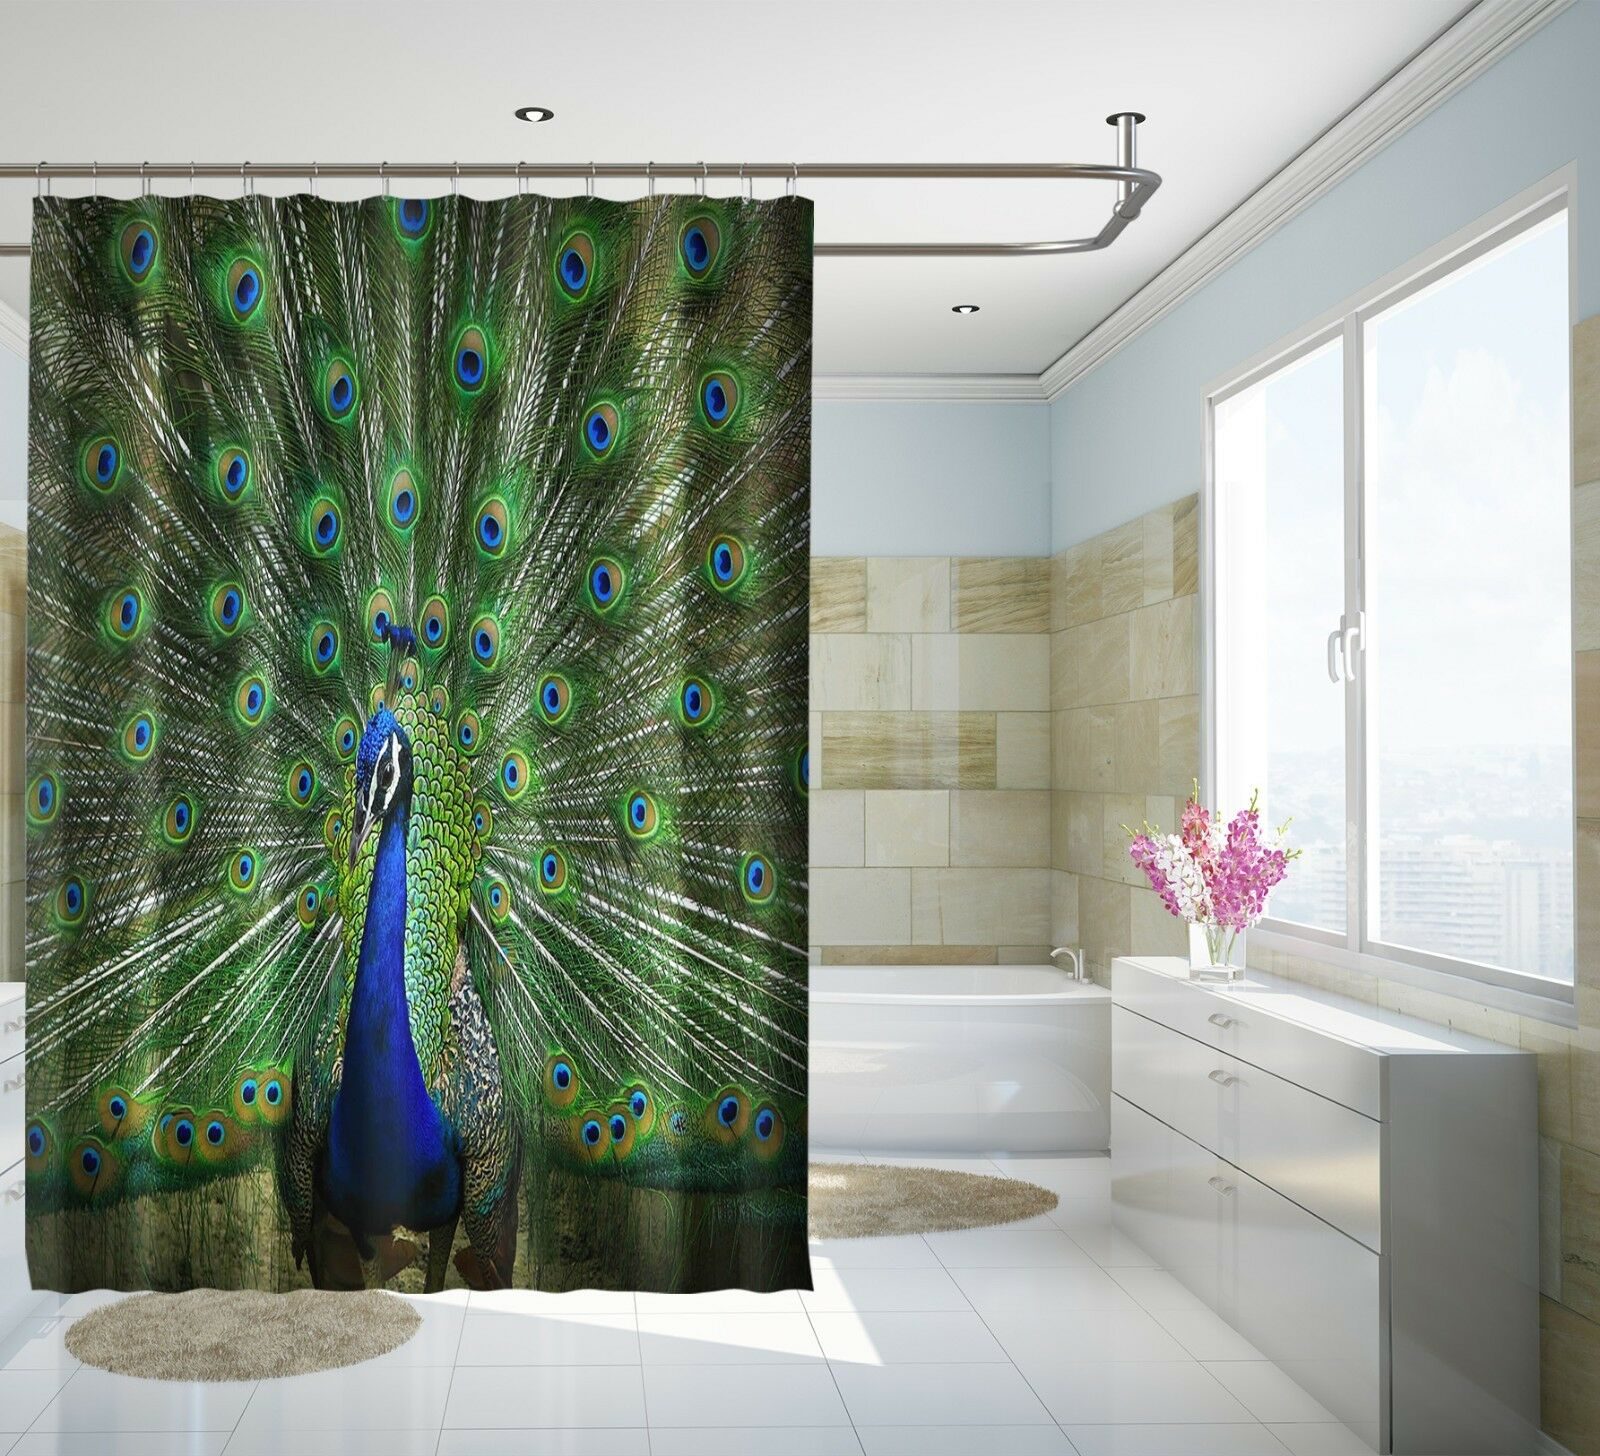 3D Blauer Pfau 13 Duschvorhang Wasserdicht Faser Bad Daheim Windows Toilette DE